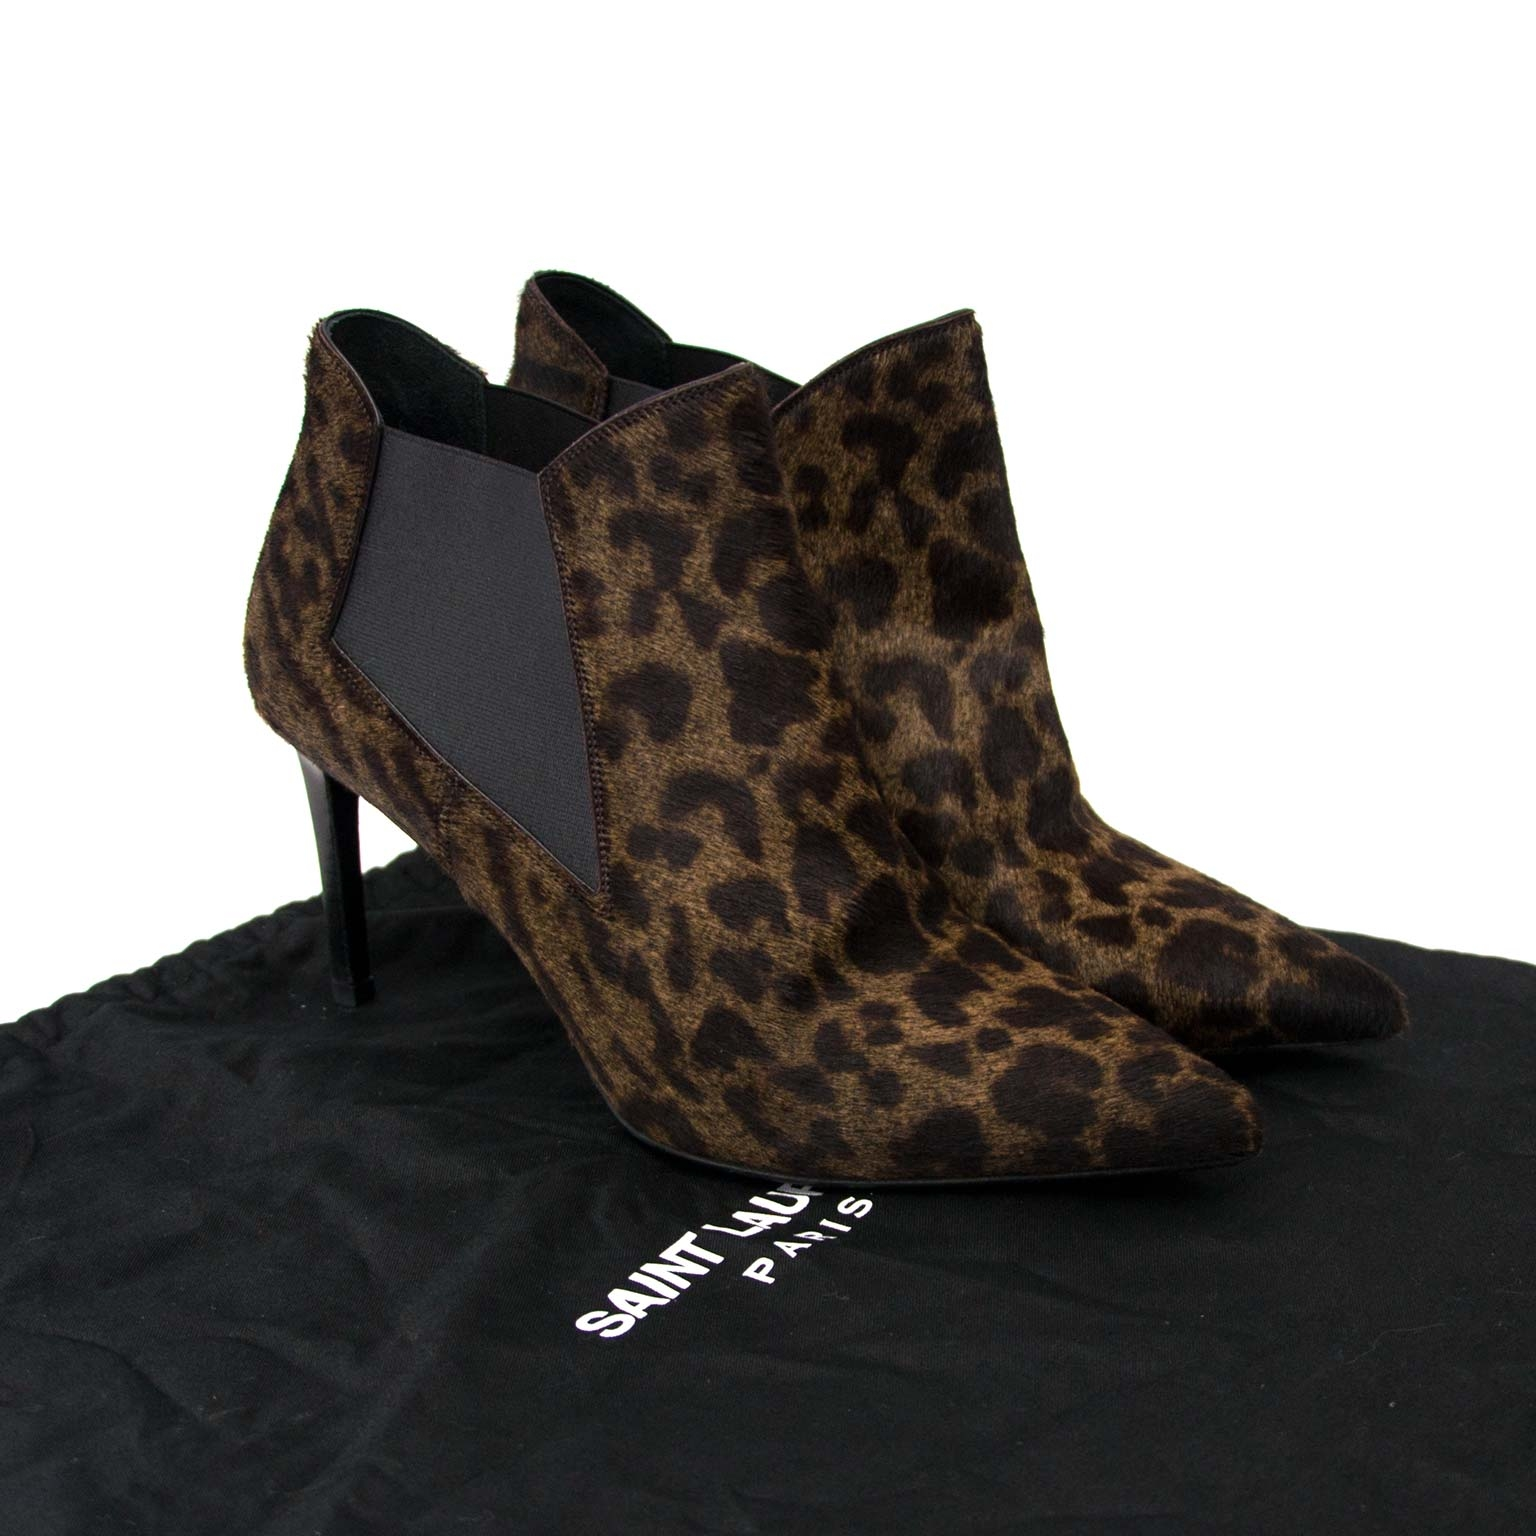 Saint Laurent Paris Leopard Print Pony Hair Ankle Booties Buy authentic designer Saint Laurent secondhand shoes boots at Labellov at the best price. Safe and secure shopping. Koop tweedehands authentieke YSL schoenen bij designer webwinkel labellov